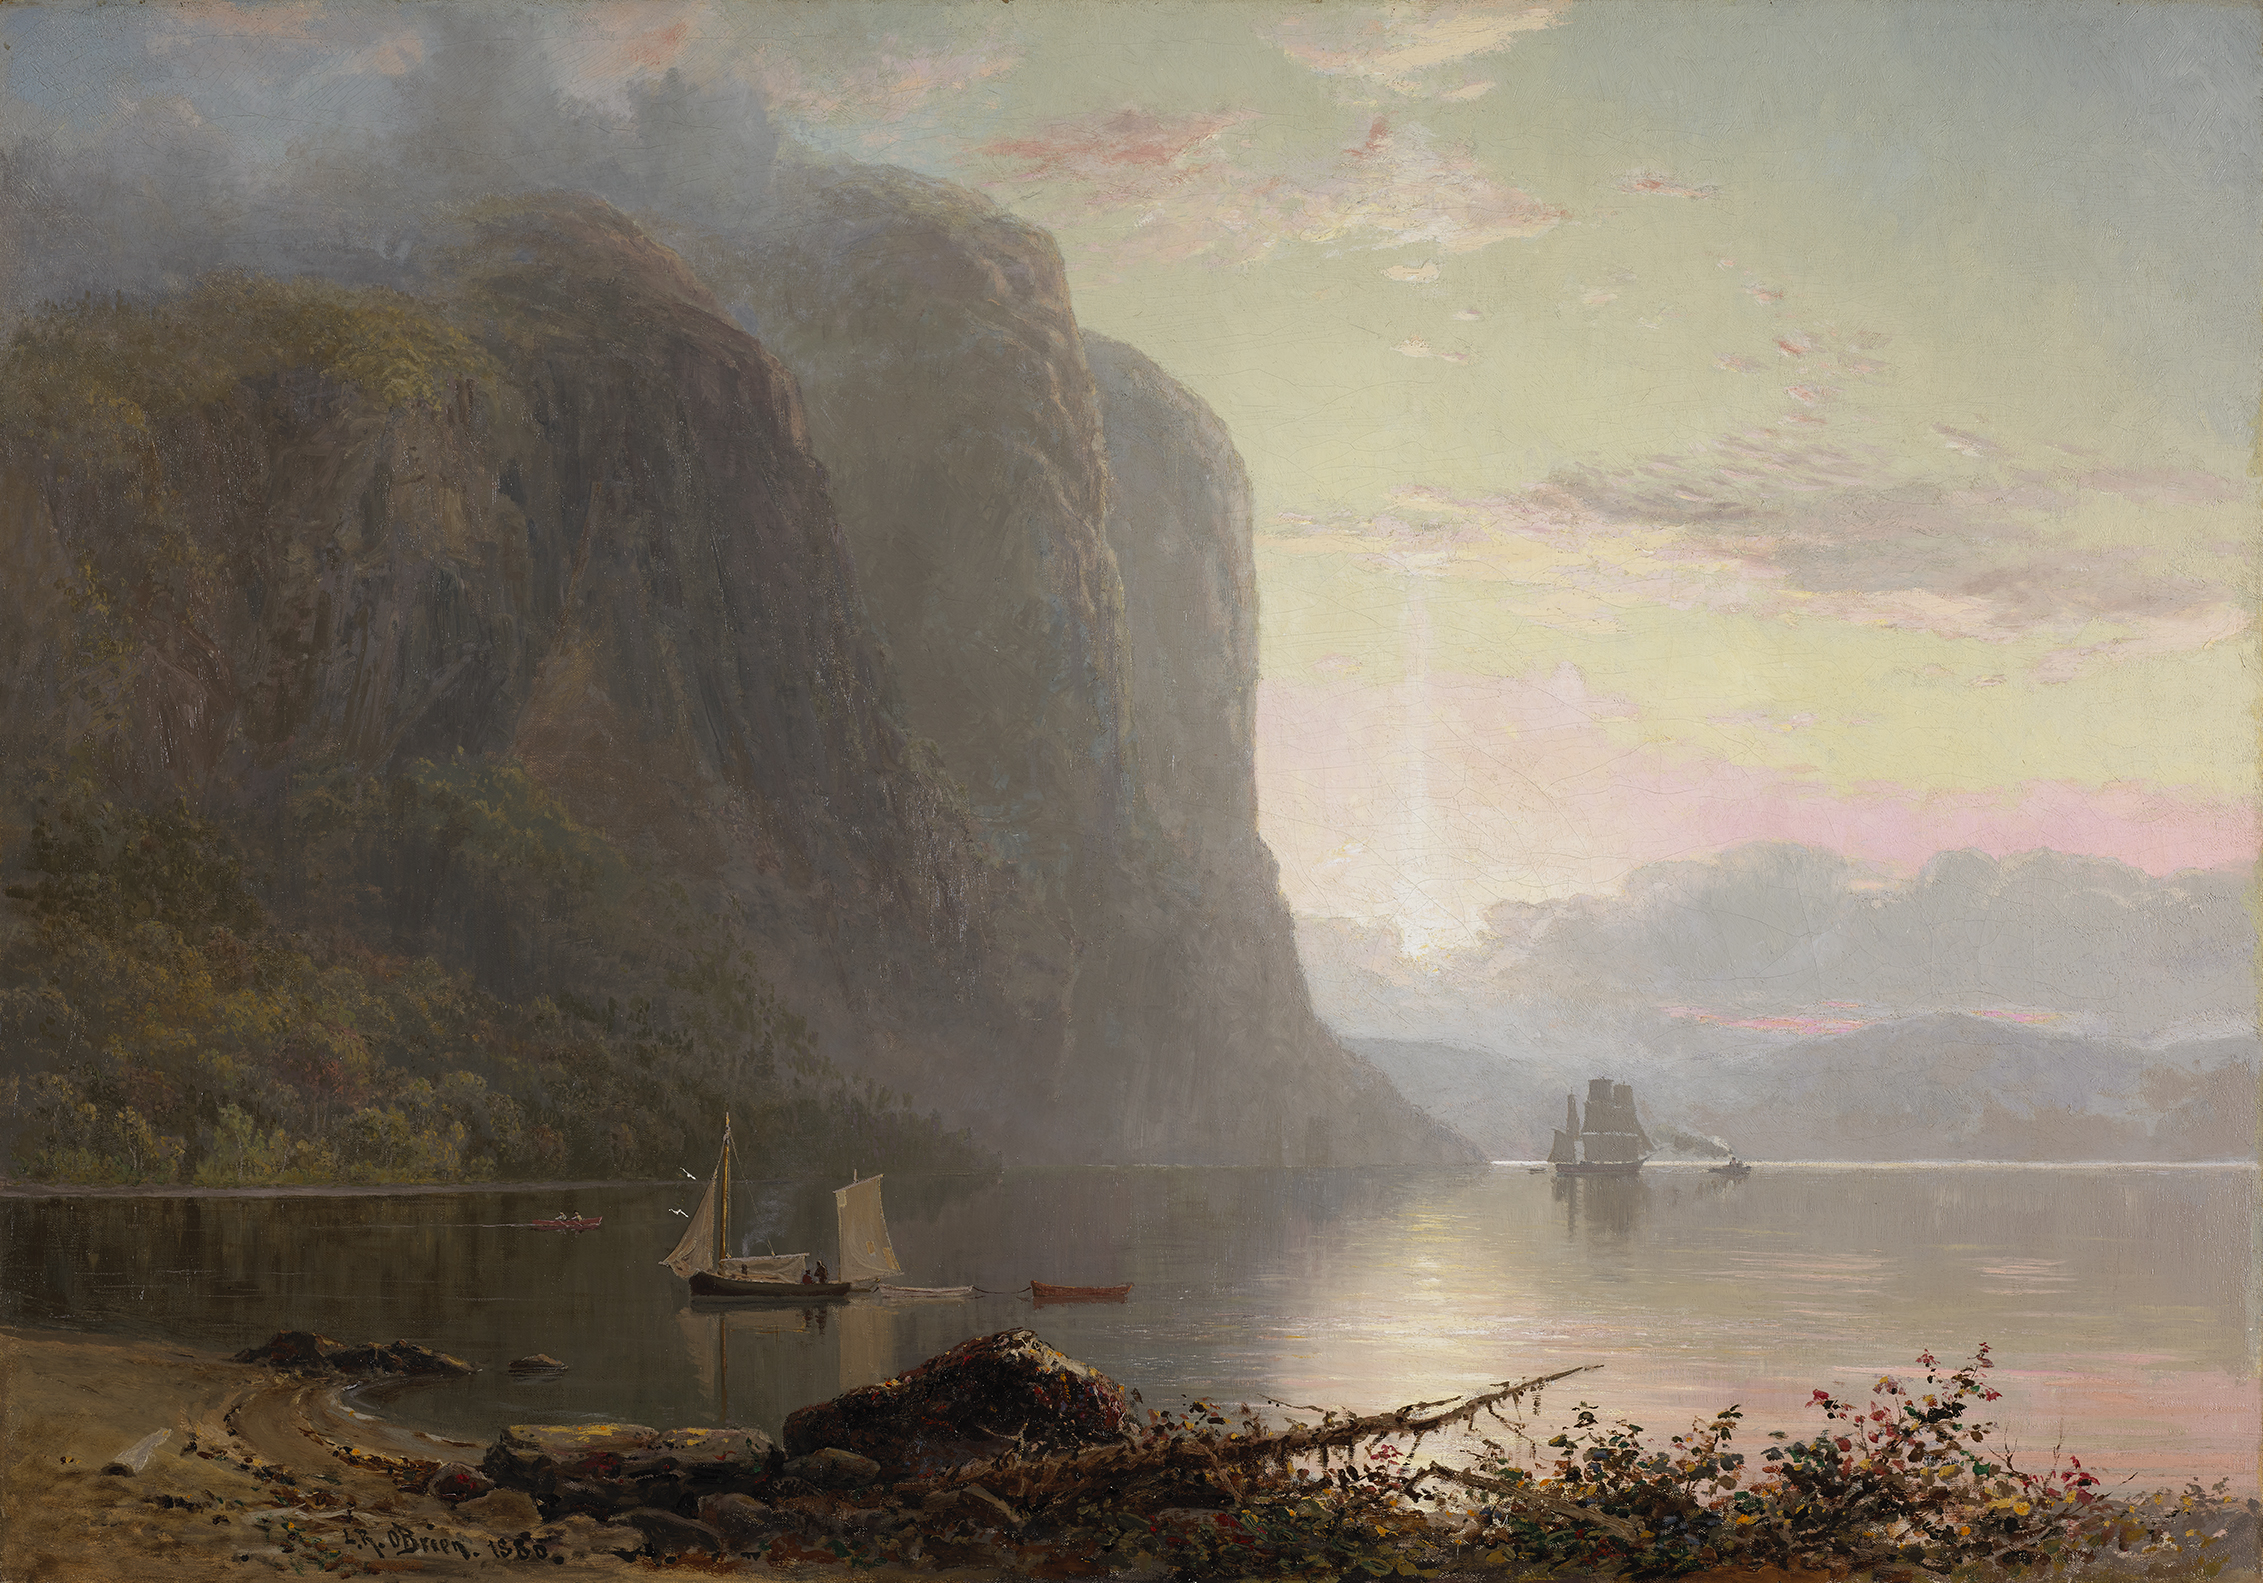 Captured from the riverbank, this landscape shows a luminous sunrise through a morning mist on the Saguenay fjord. Two ships are discernible in the distance, and small boats float at the foot of steep cliffs in the left half of the composition.